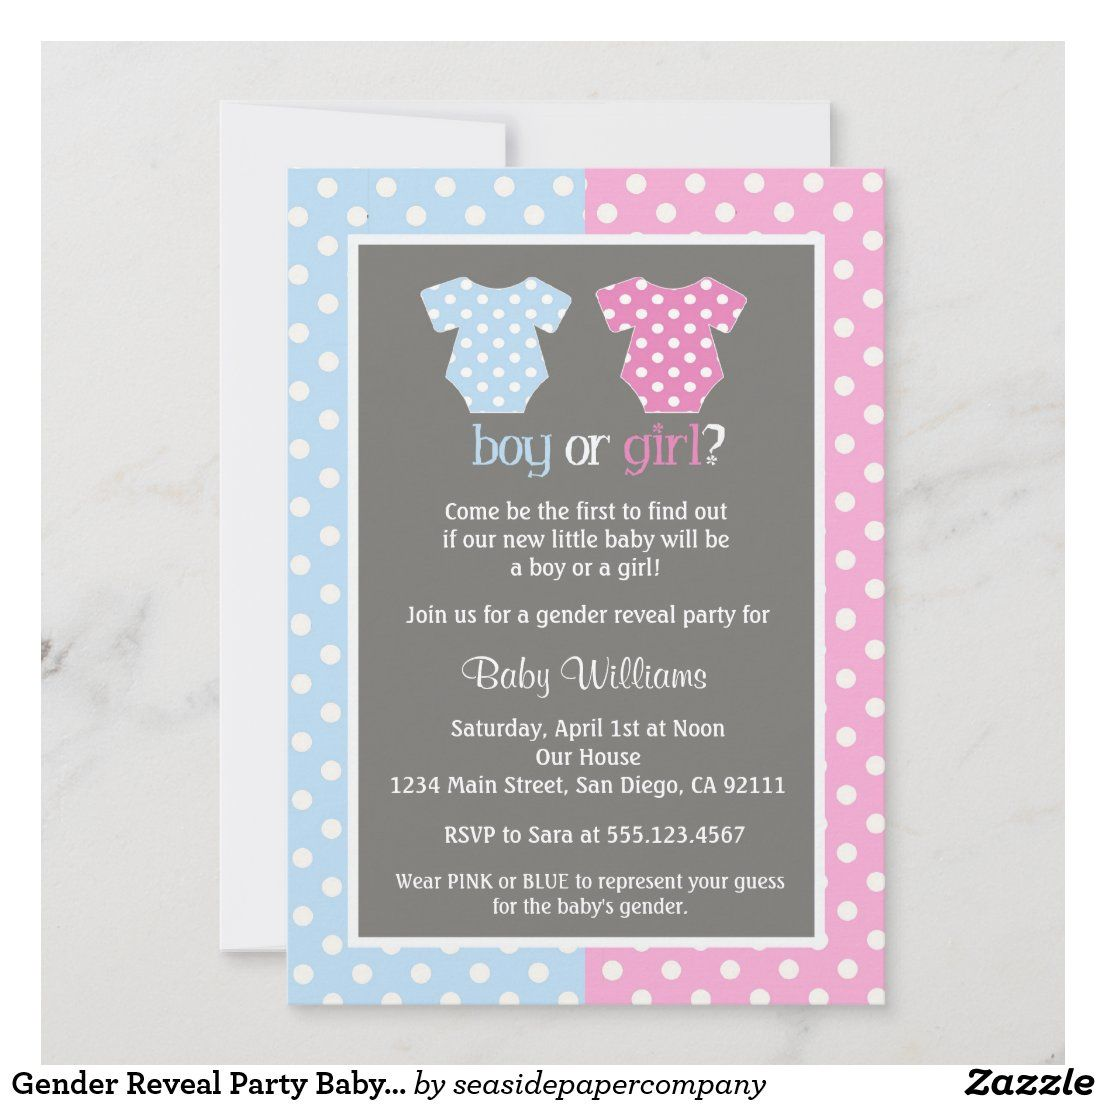 Gender Reveal Party Baby Shower Invitations Zazzle Com In 2021 Gender Reveal Party Gender Neutral Baby Shower Invitations Gender Reveal Invitations